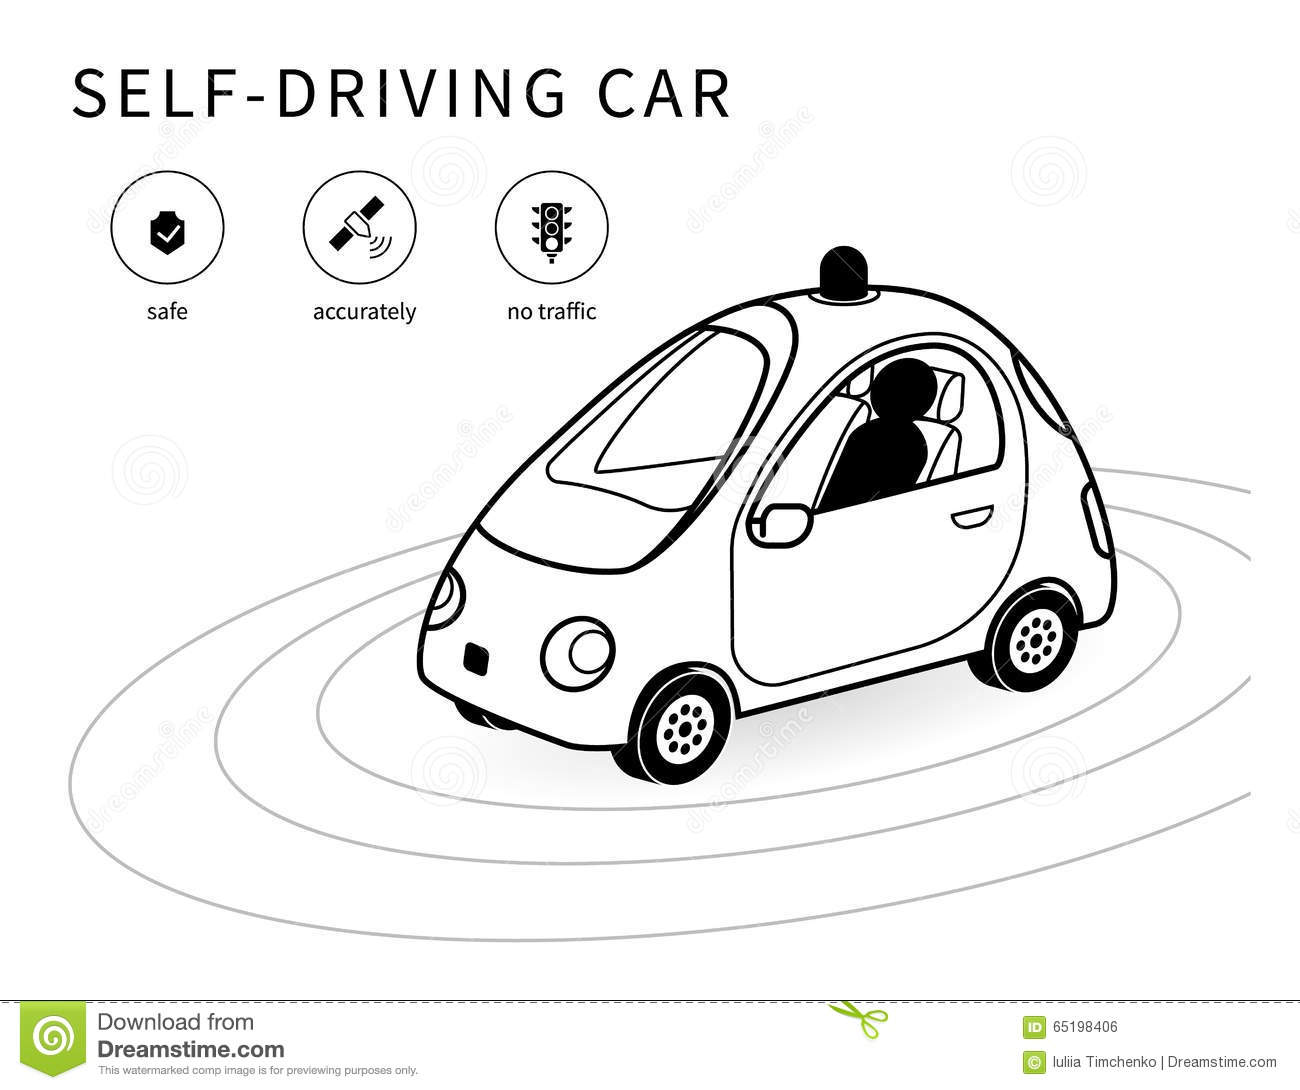 The end also Stock Illustration Cartoon Car Sketch Vector Illustration Contour Image46423114 additionally Search further Stock Illustration Self Driving Car Line Icon Isomentic Safety Transportstion Smart Navigation No Traffic Icons Conceptual Symbol Image65198406 likewise Young drivers. on driving car illustration